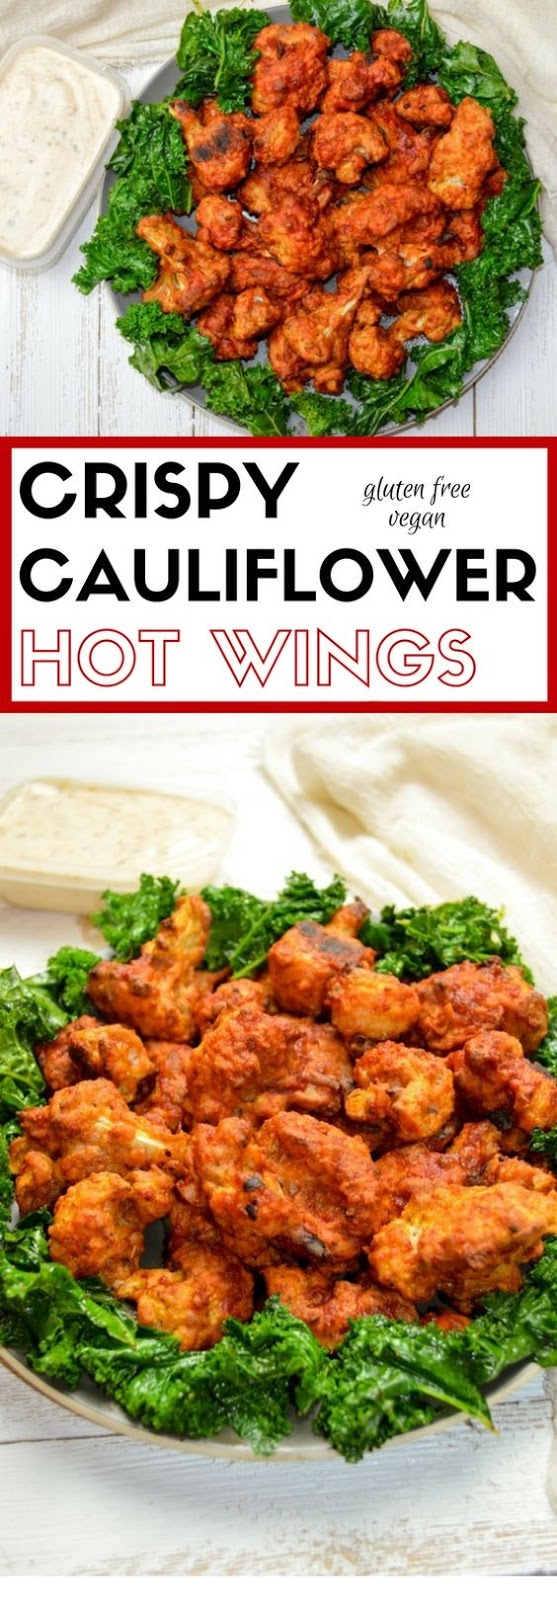 Crispy Cauliflower Hot Wings